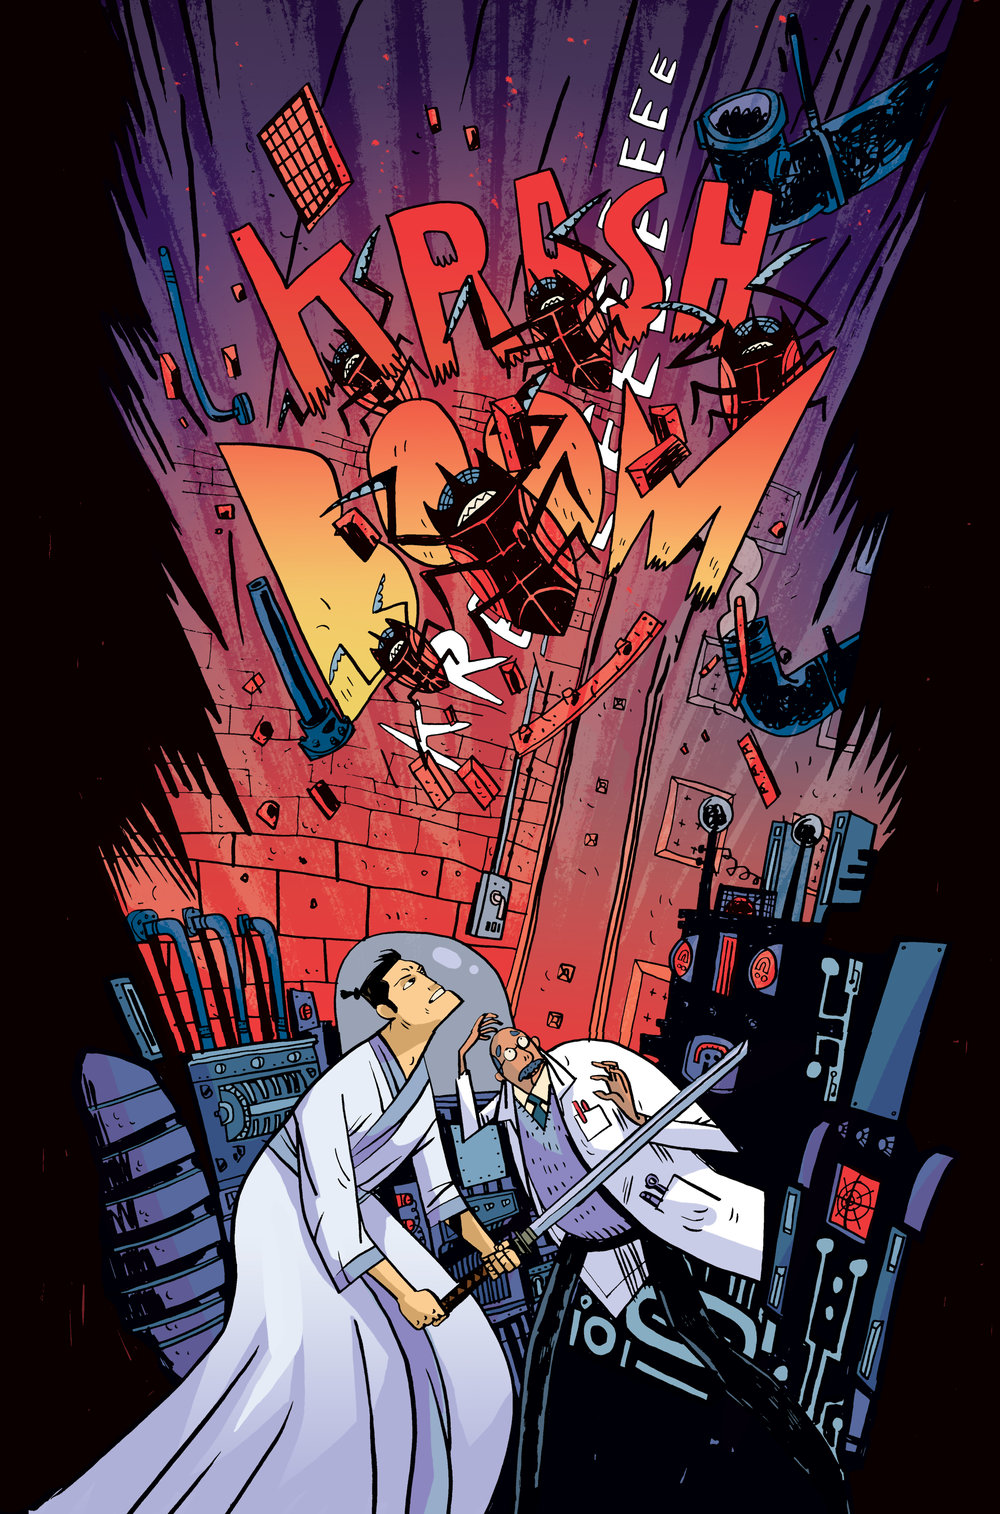 Colors for Samurai Jack: Quantum Jack #4 (IDW) – Art by Warwick Johnson Cadwell